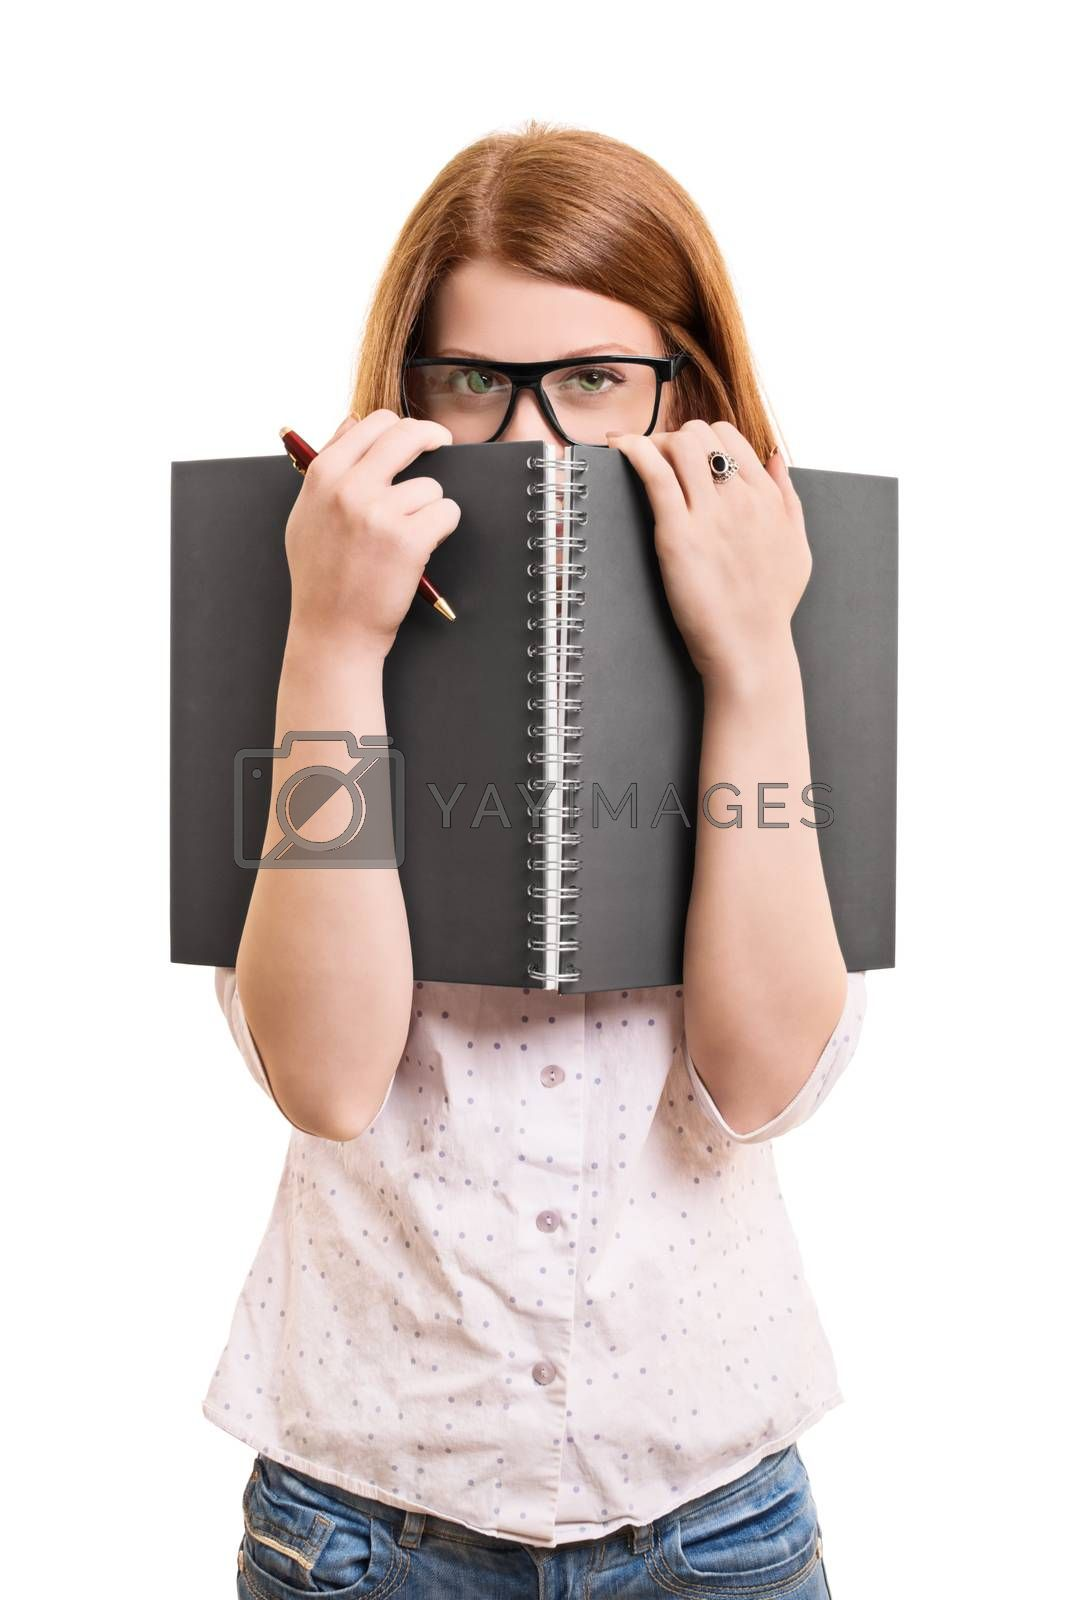 A portrait of a young female student hiding behind her book, isolated on white background.